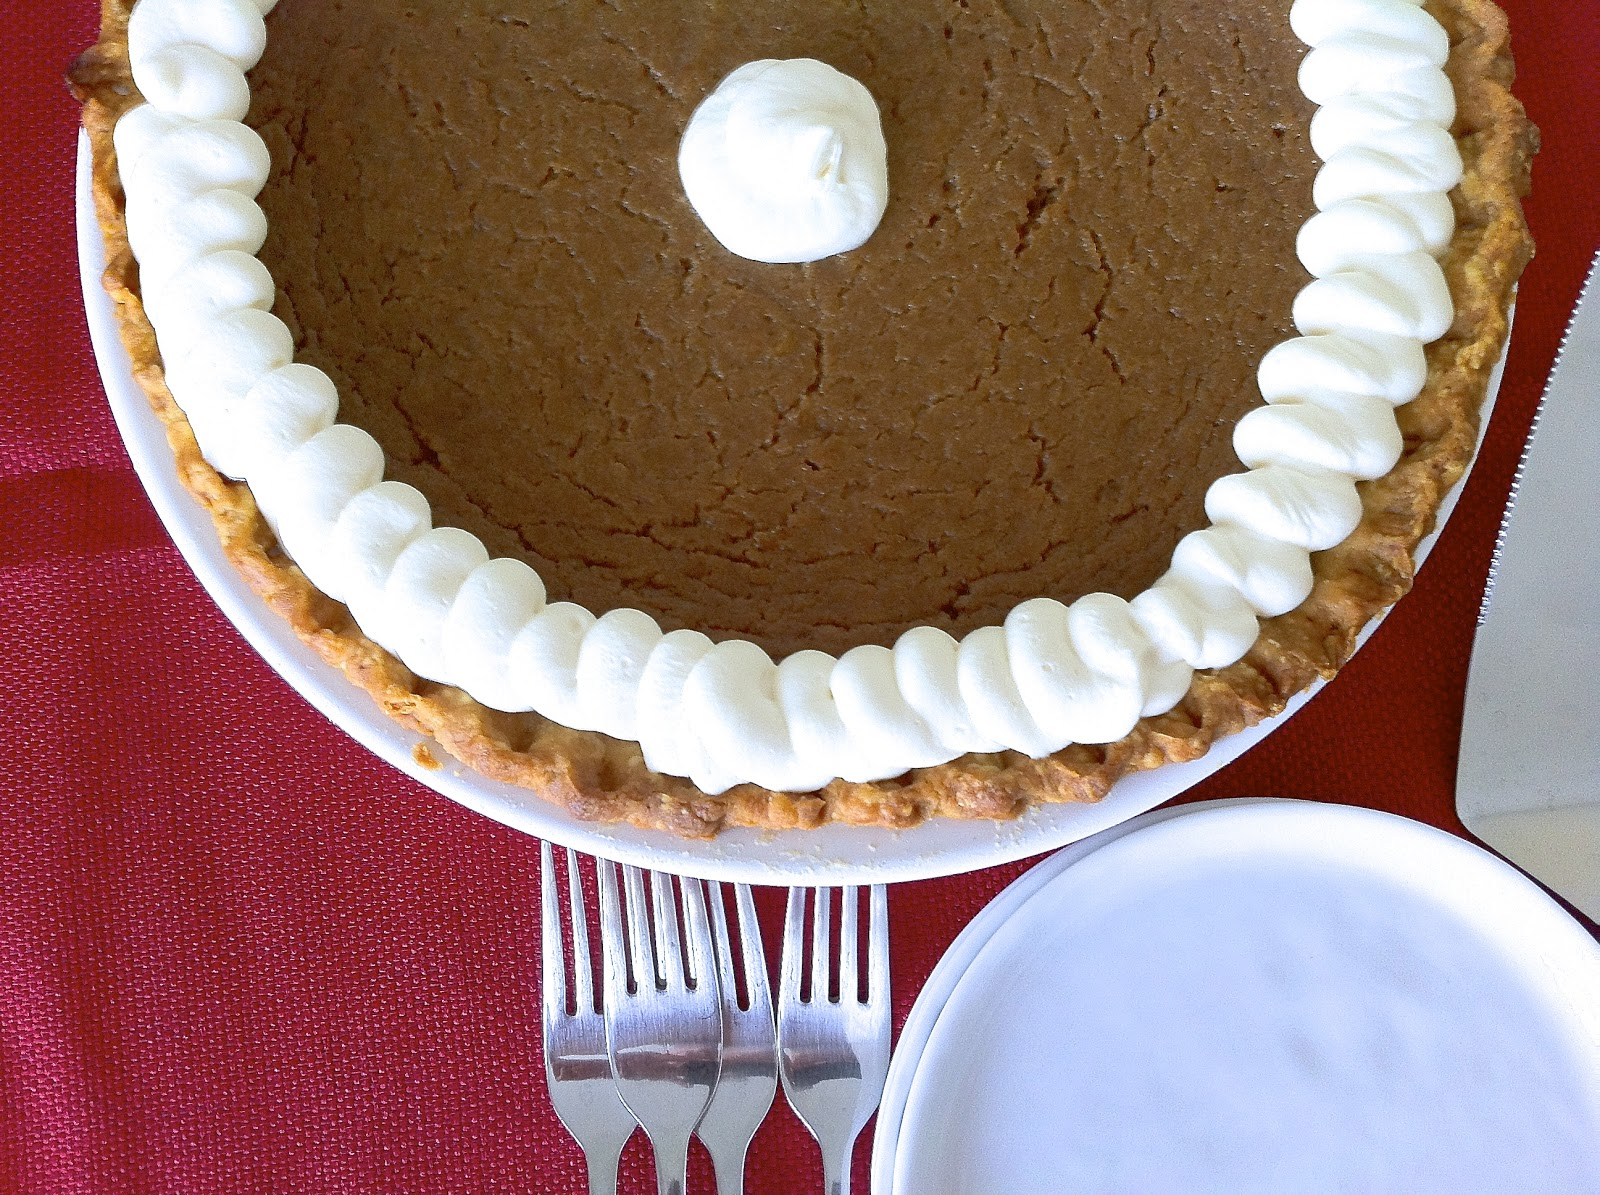 Pumpkin Pie with Whipped Cream, Closeup